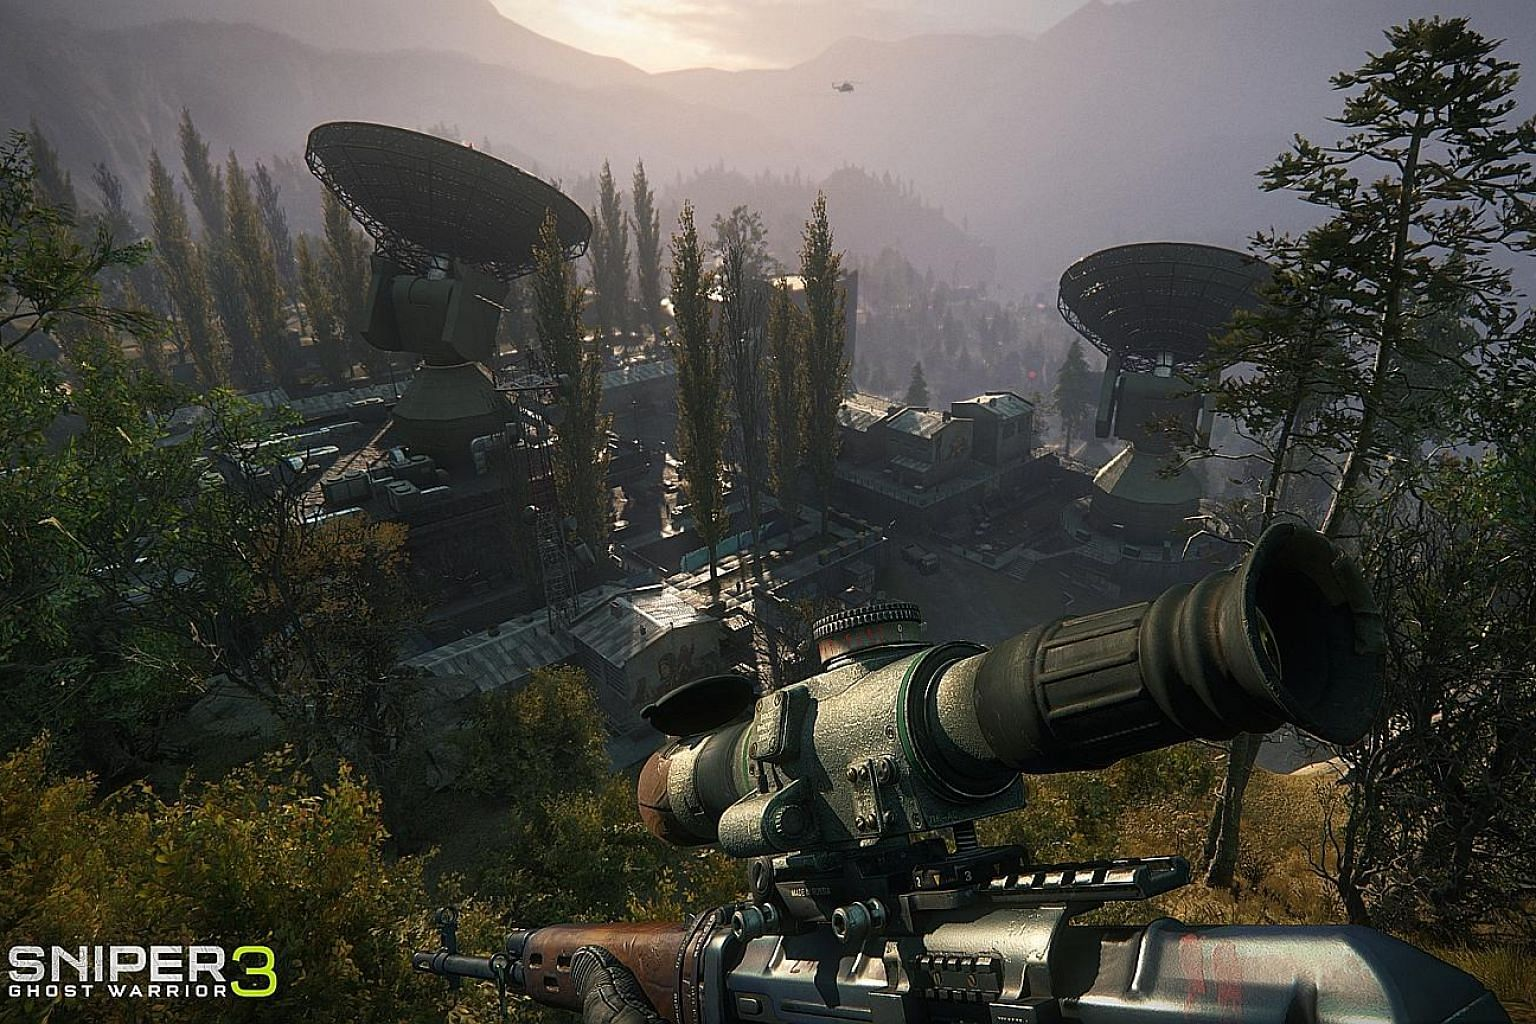 Set in a fictitious location in Georgia, there is a good mix of landscape to explore in Sniper Ghost Warrior 3.